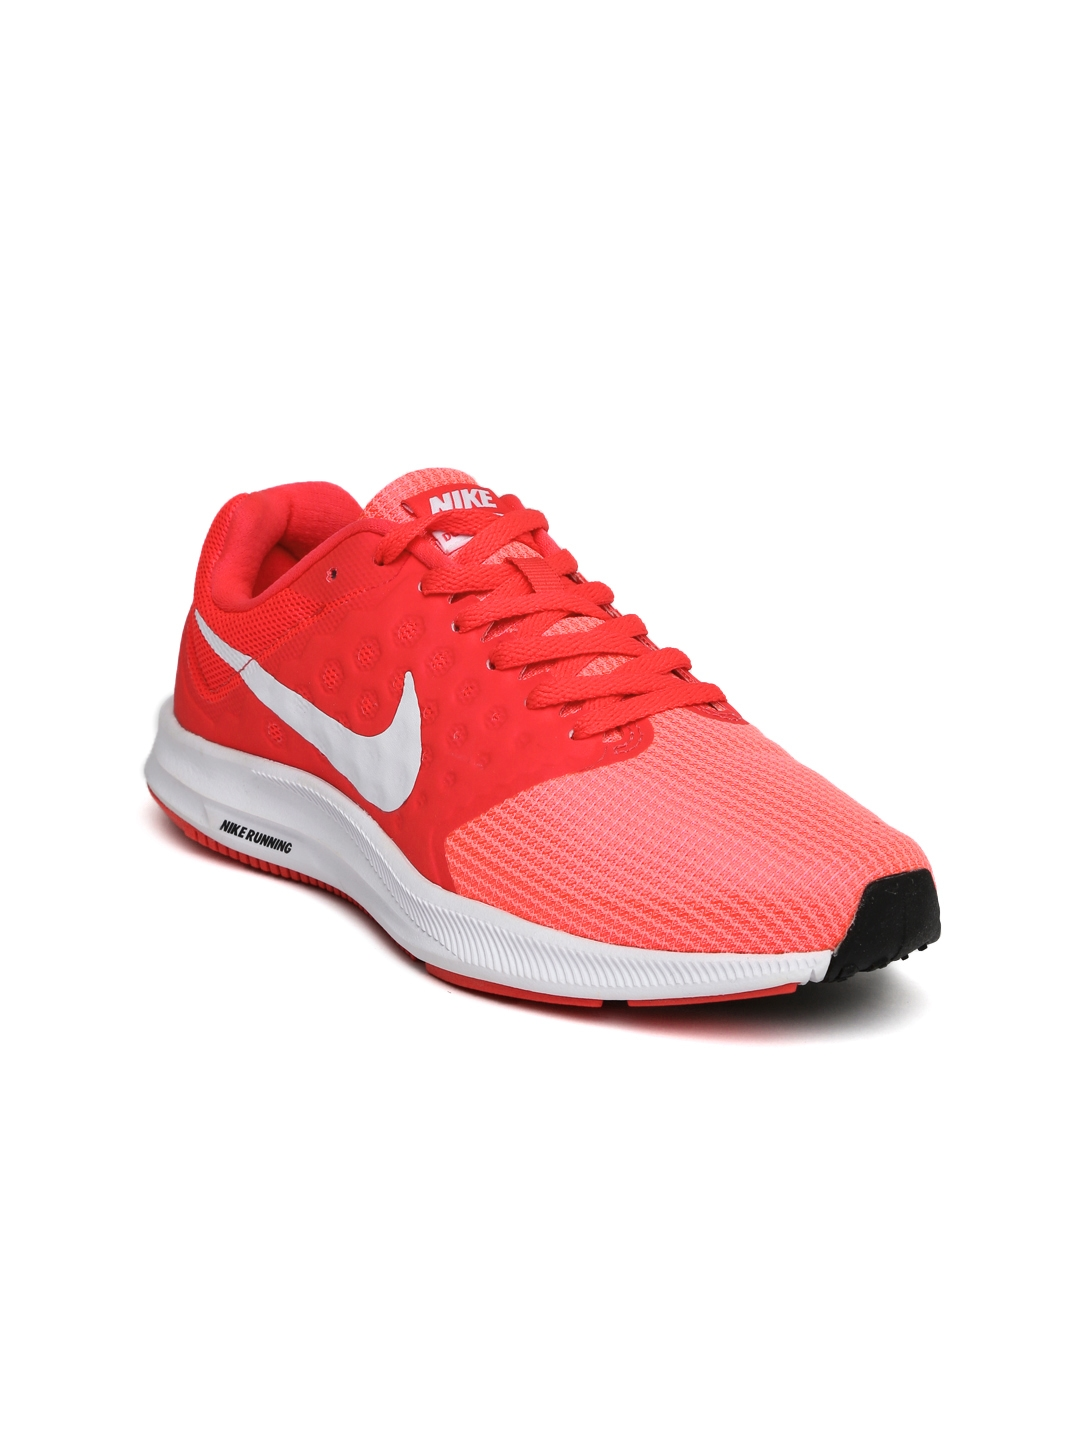 895a3fdcd26f0 Buy Nike Women Pink DOWNSHIFTER 7 Running Shoes - Sports Shoes for ...